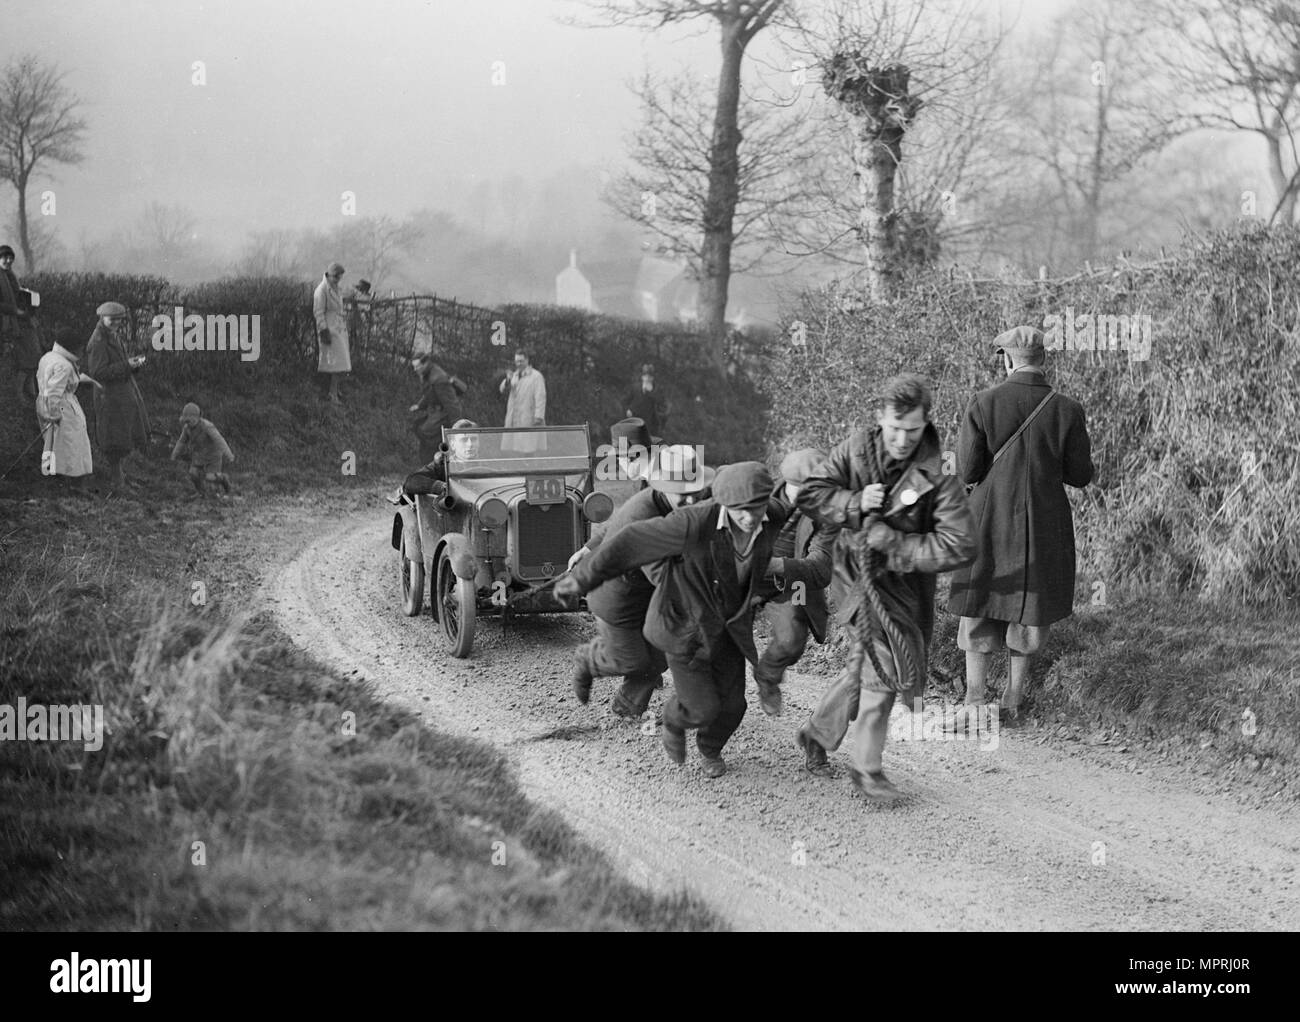 Austin Chummy of CWB Marshall getting a tow at the NWLMC London-Gloucester Trial, 1931. Artist: Bill Brunell. - Stock Image